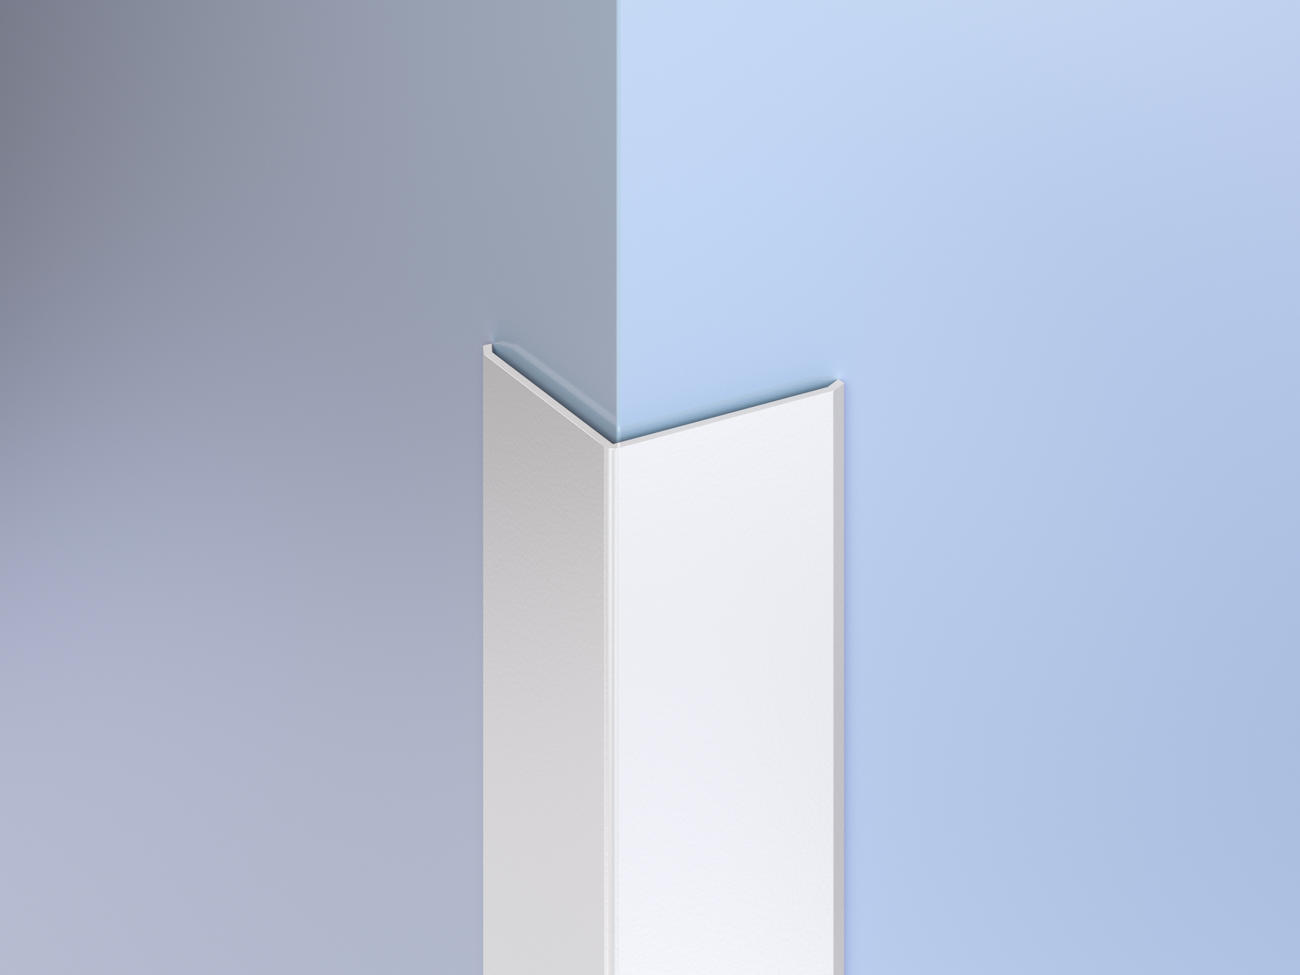 Surface-Mount Antimicrobial Corner Guards